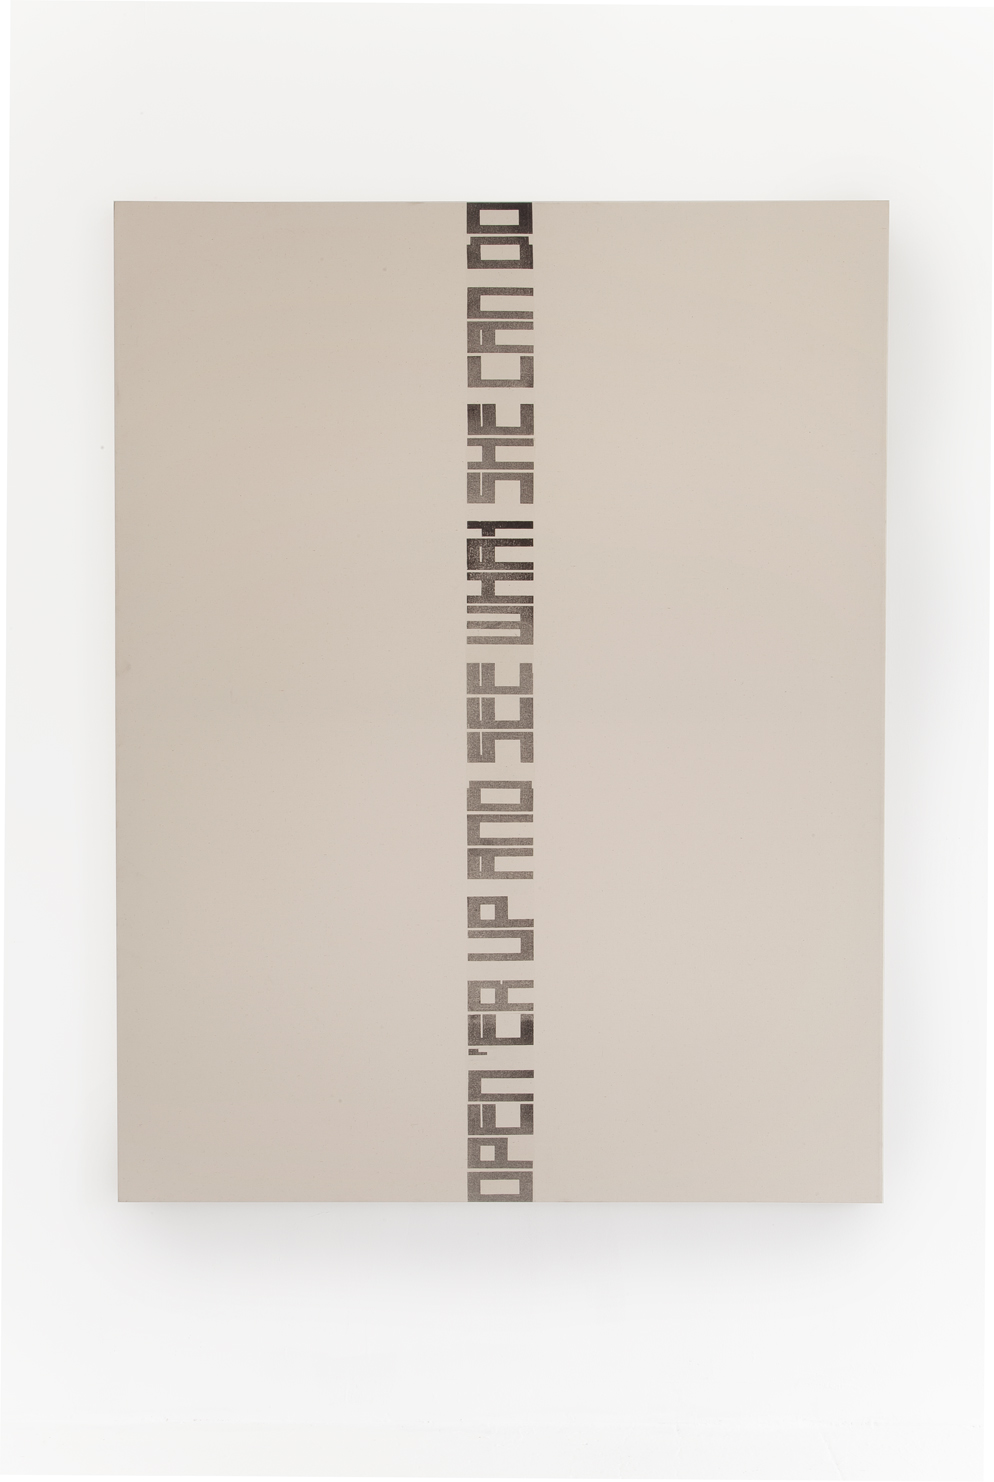 Marlene McCarty   Untitled (Open 'Er Up And See What She Can Do), 1993   Heat transfer on canvas   72 x 62 in.